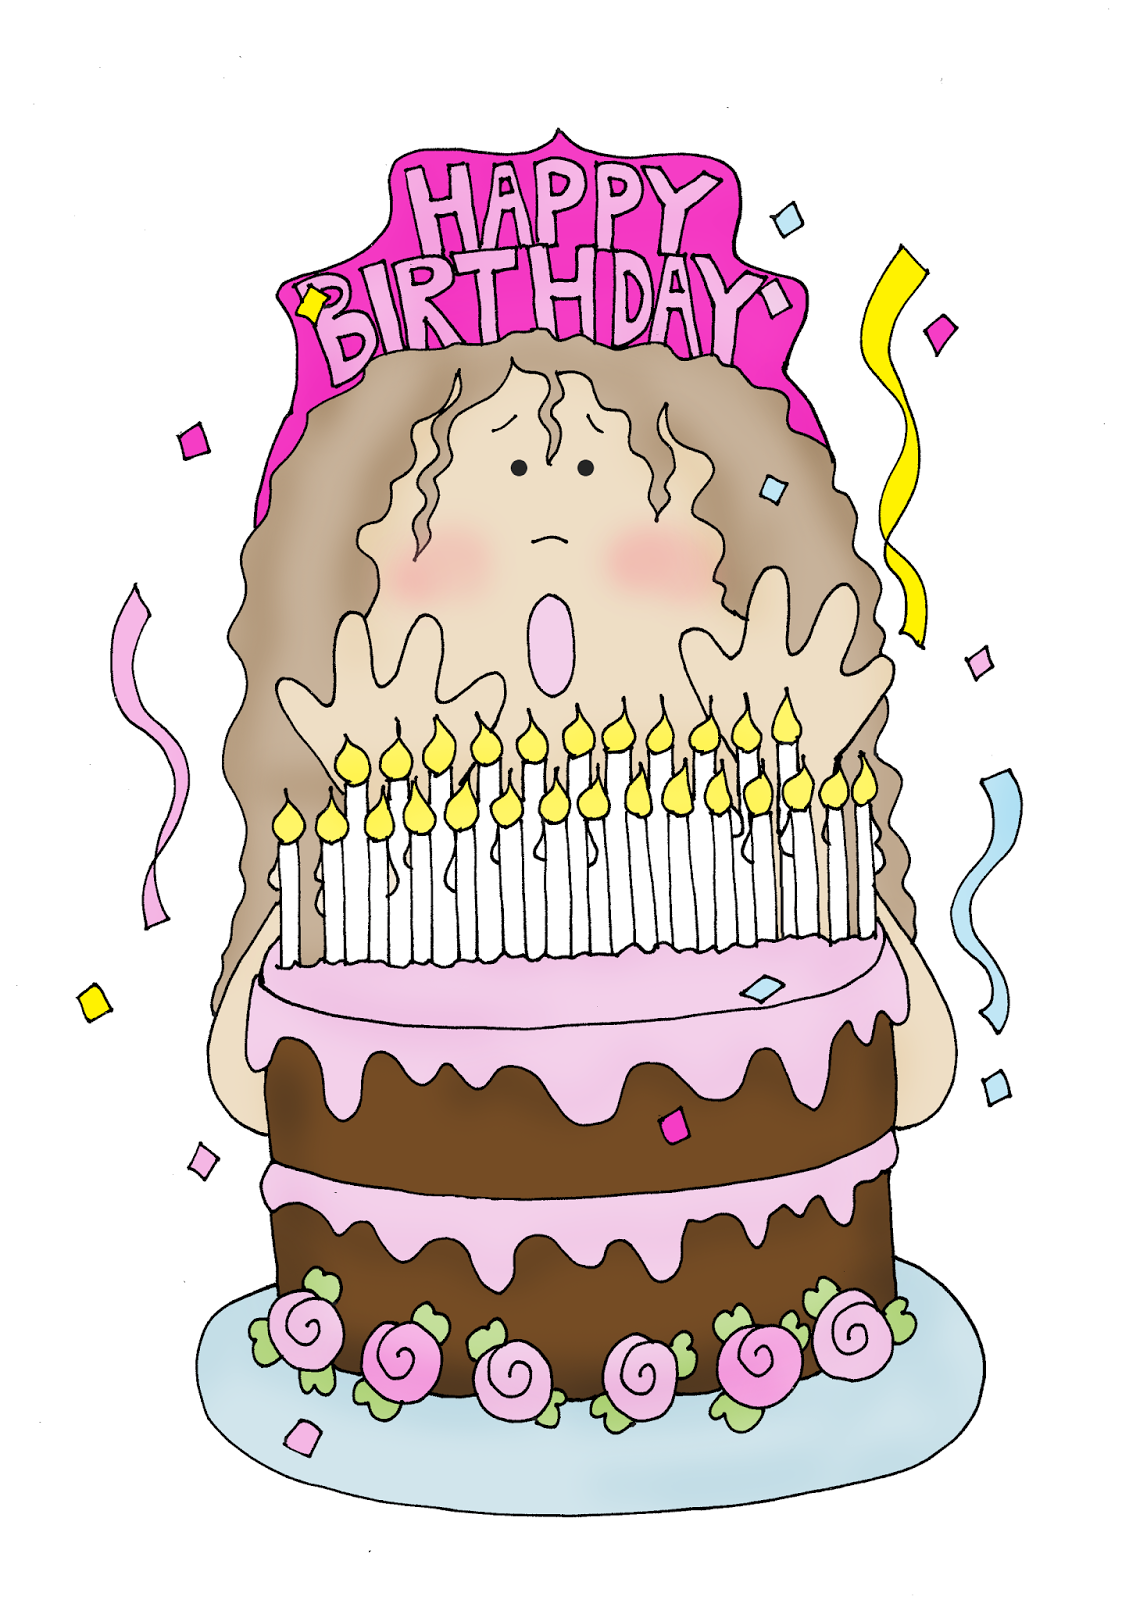 Too+Many+Candles0004-color.png (1147×1600) | Cumpleaños! | Pinterest ...